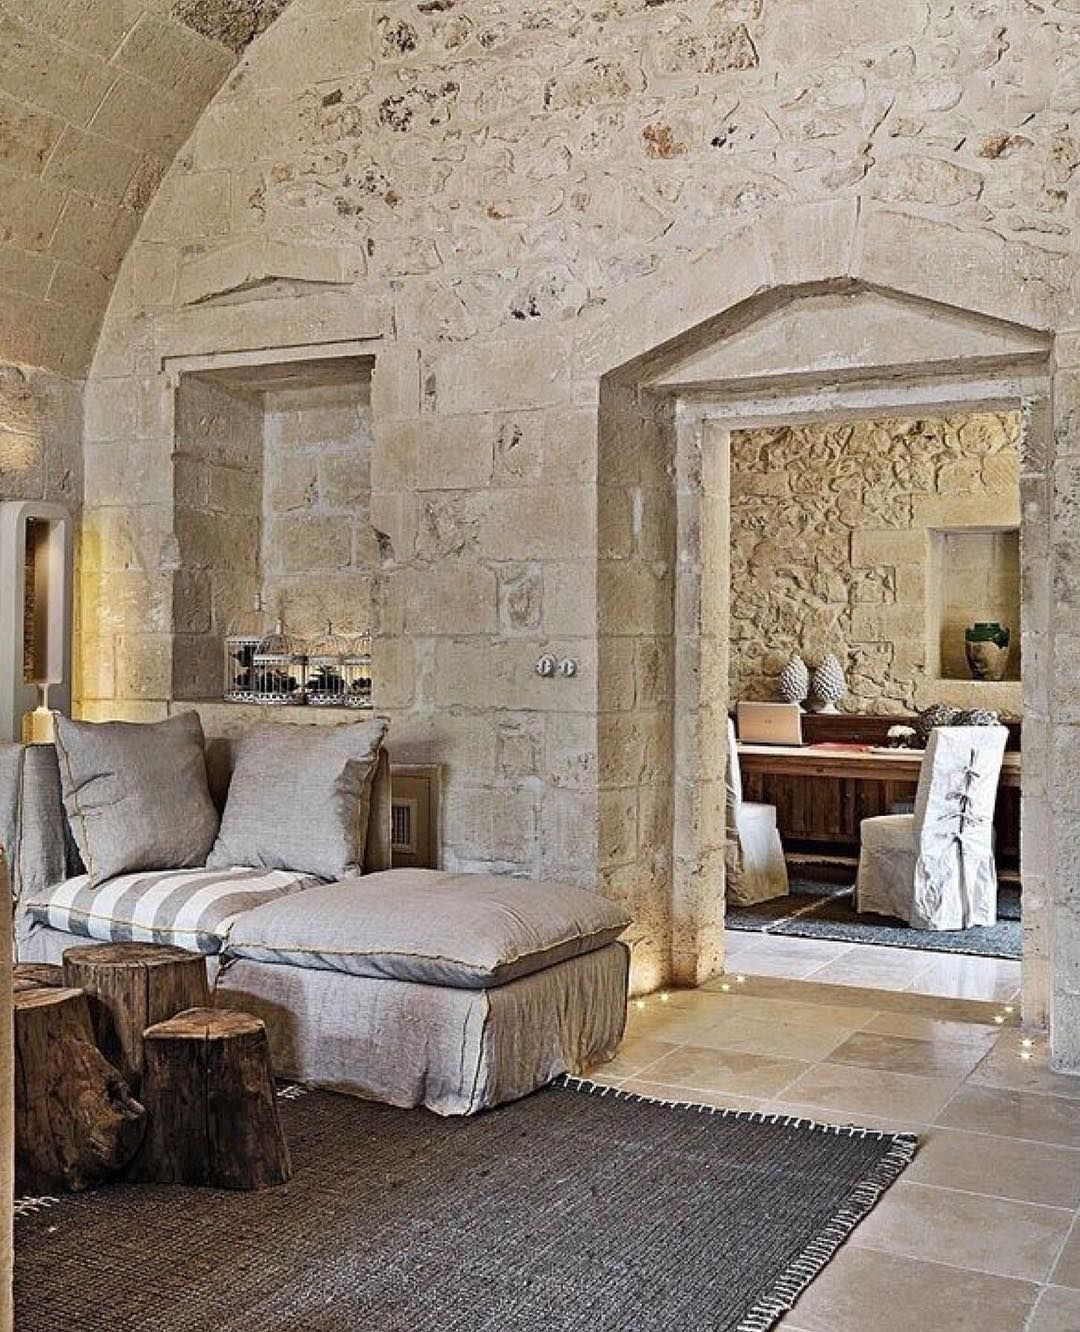 ROUGH TEXTURE: (WHY) The Rough Walls Throughout The Room